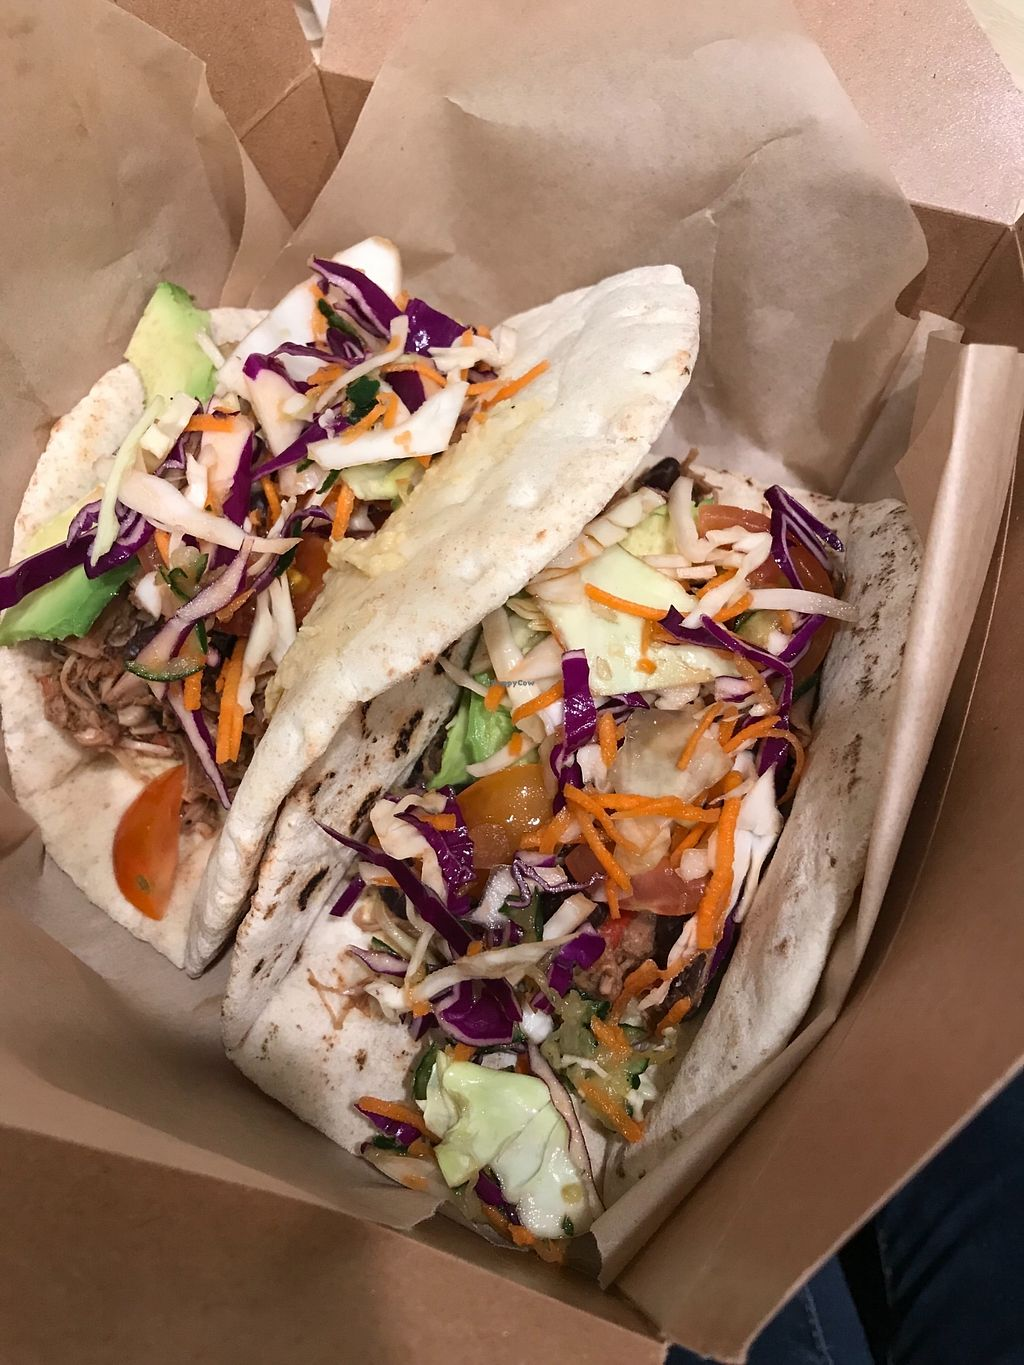 """Photo of Evan's Organic Eatery  by <a href=""""/members/profile/KarenTatur"""">KarenTatur</a> <br/>Jackfruit Tacos <br/> March 14, 2018  - <a href='/contact/abuse/image/111060/370672'>Report</a>"""